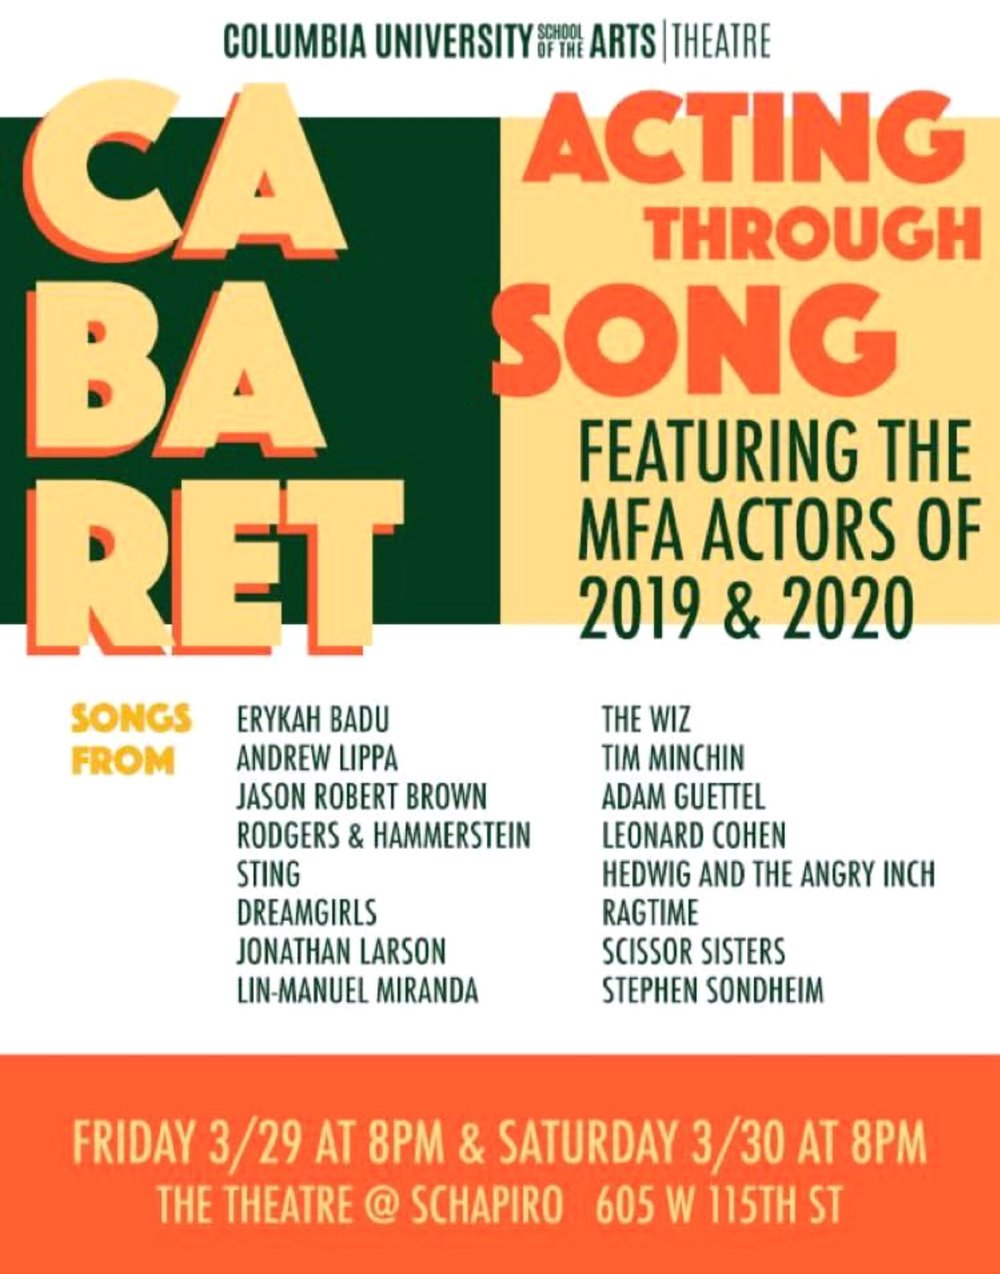 The 1st Annual Columbia MFA Cabaret! - I'll be performing a number from Rent, so take it or leave it… ;)Friday March 29 @ 8pmSaturday March 28 @ 8pmSchapiro Theatre (W 115th & Bway)Free admission - Click here to RSVP!